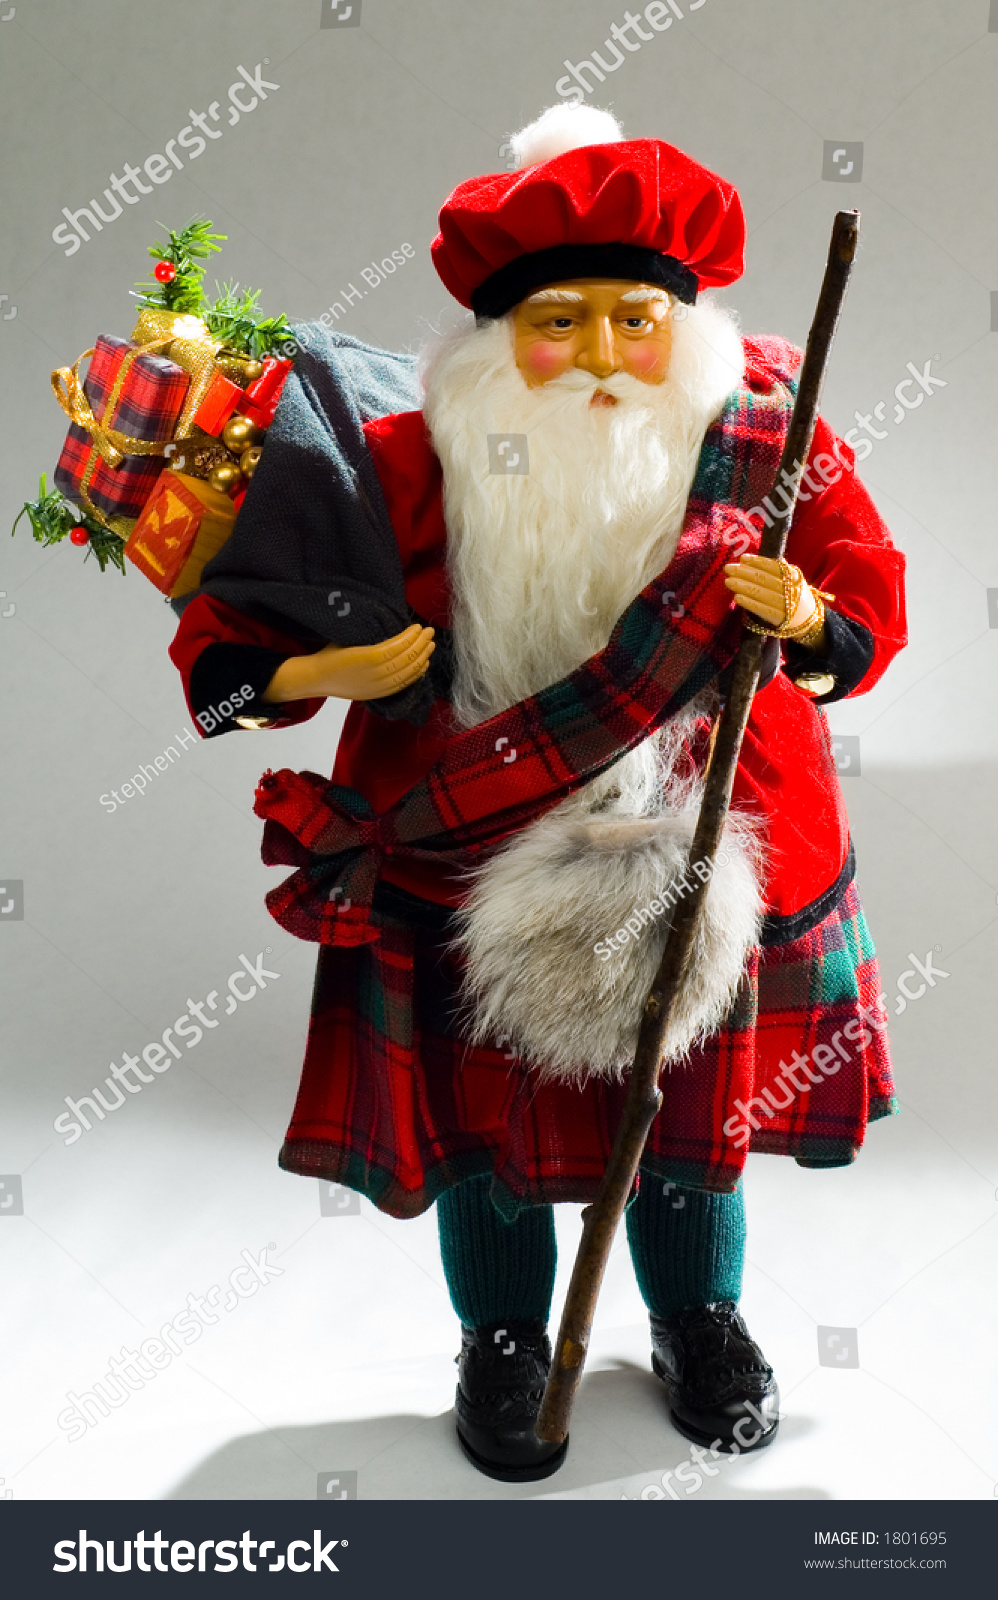 Scottish Santa Claus With Toy Bag Day Time Stock Photo